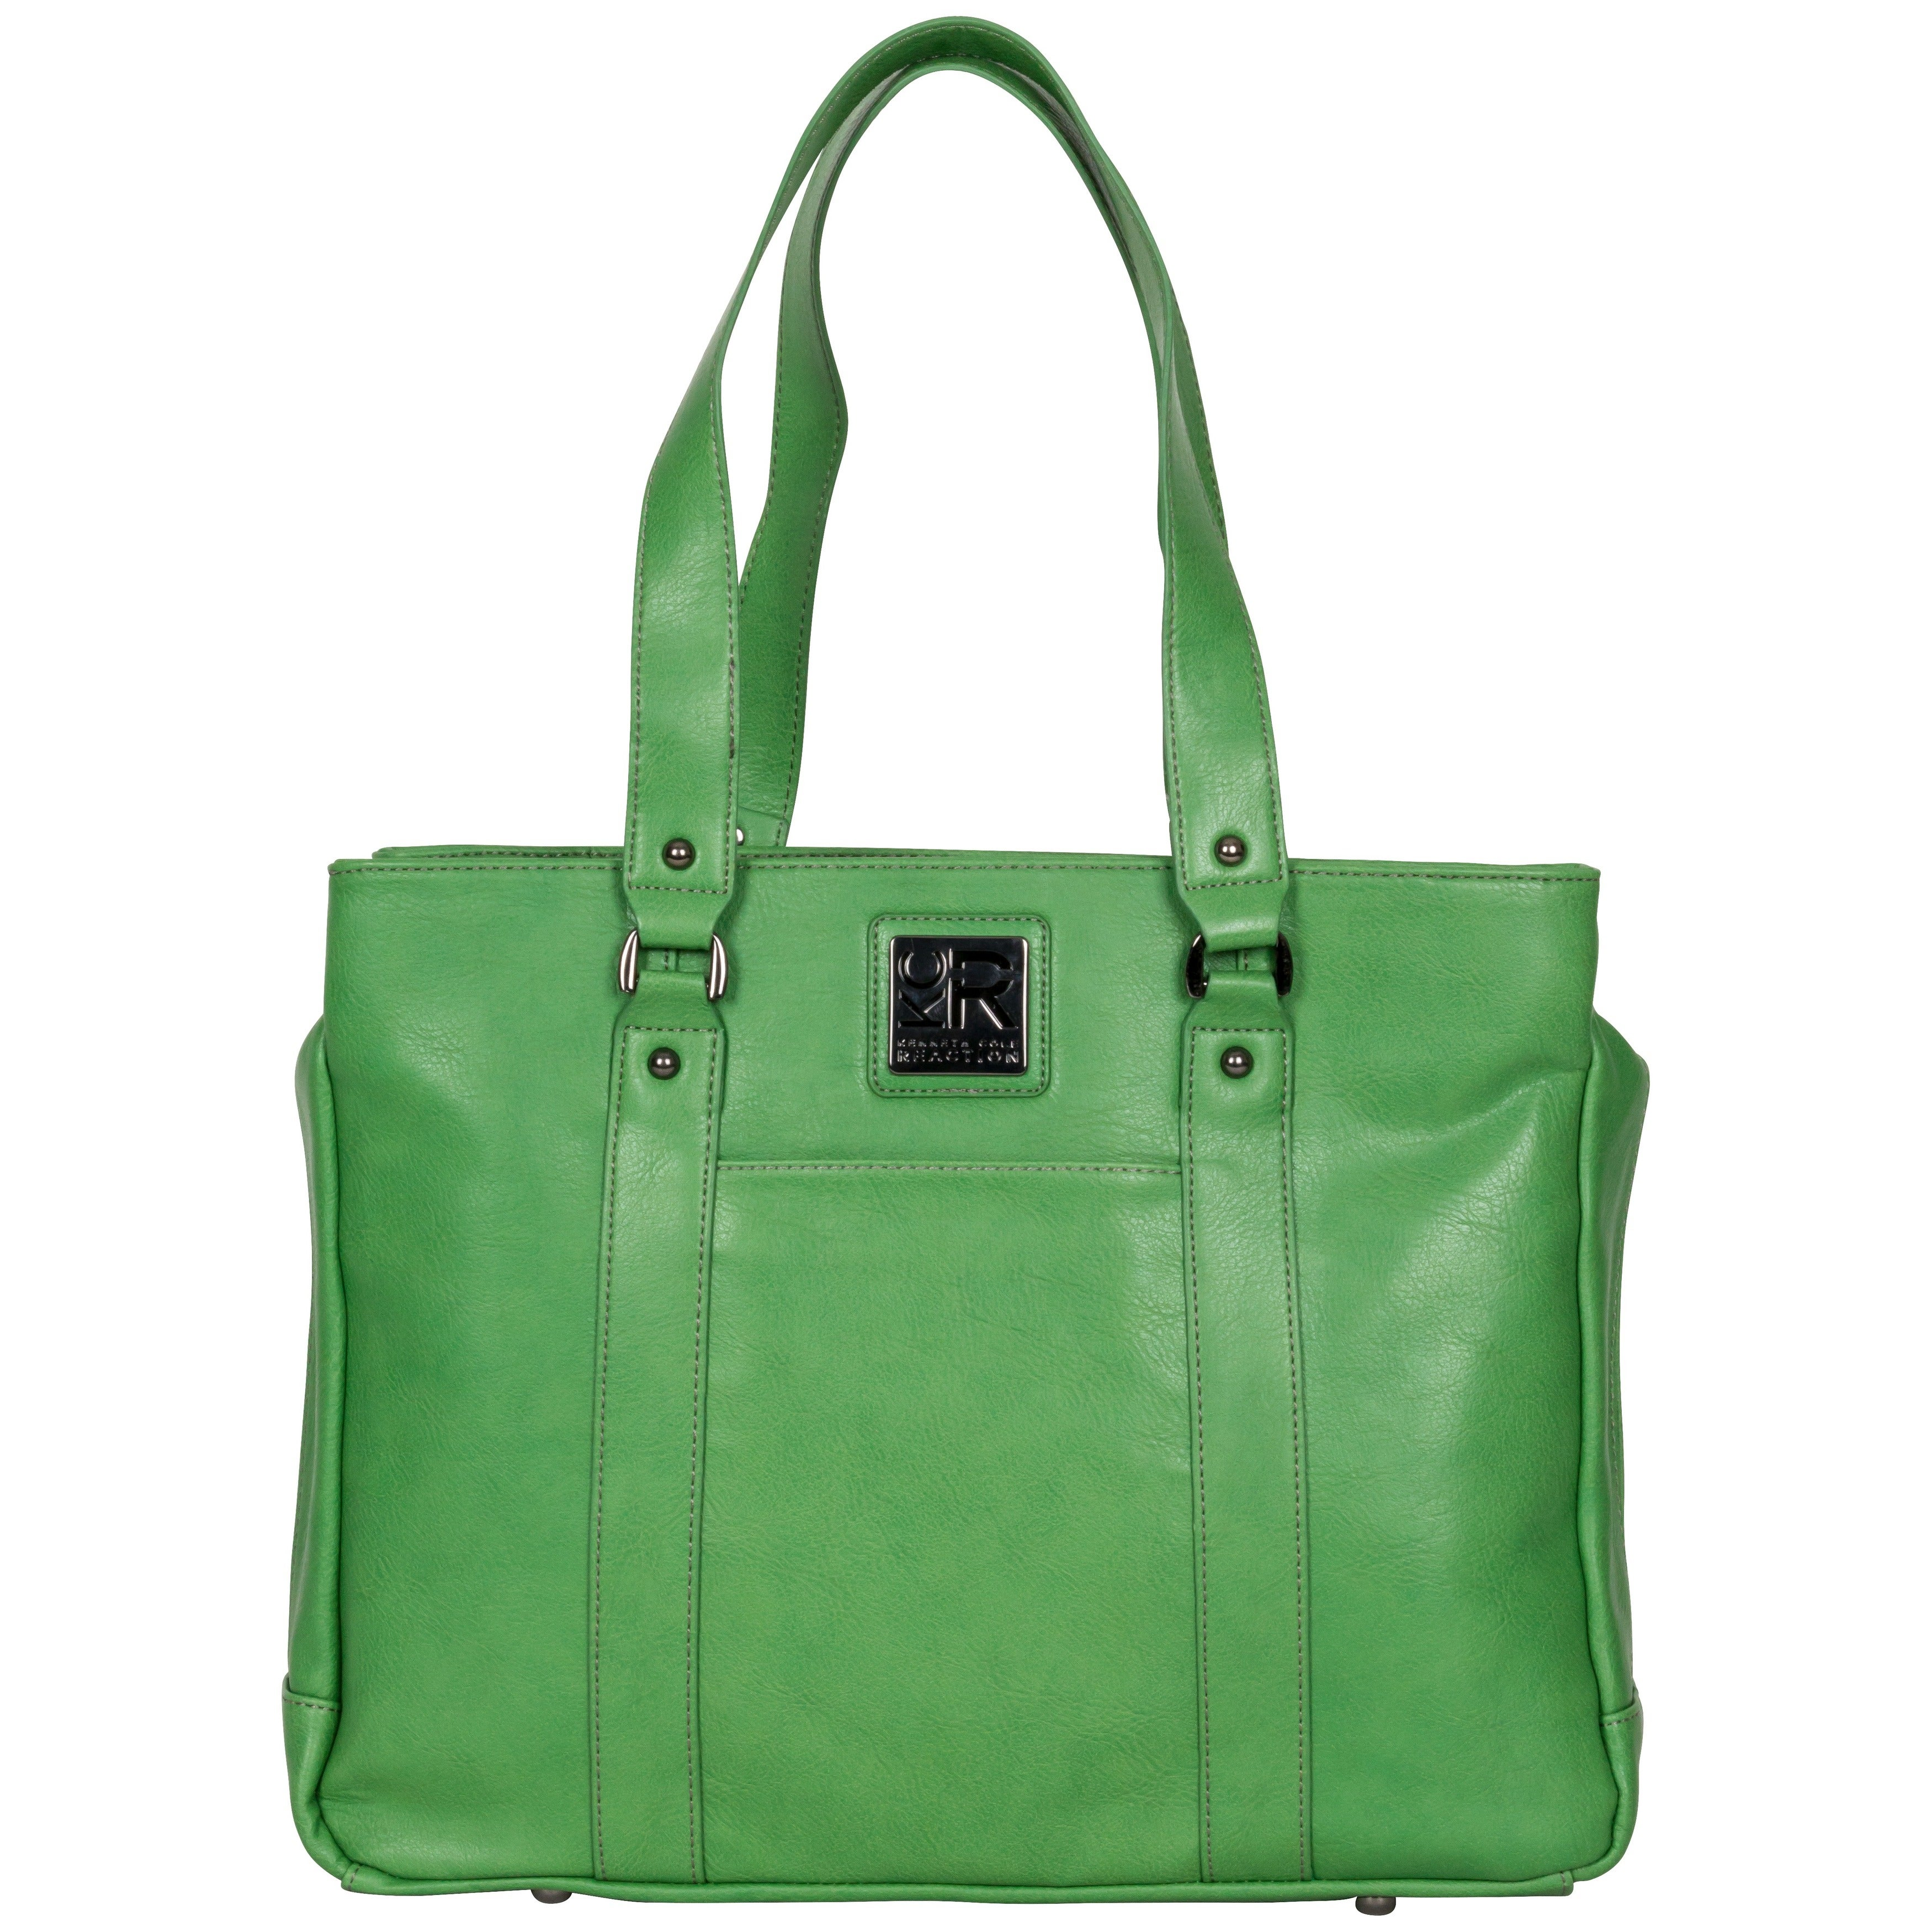 Kenneth Cole Reaction Triple Compartment Pebbled Faux-leather Top-Zip  15-inch Computer Business Tote Bag 19dddab39dfc1